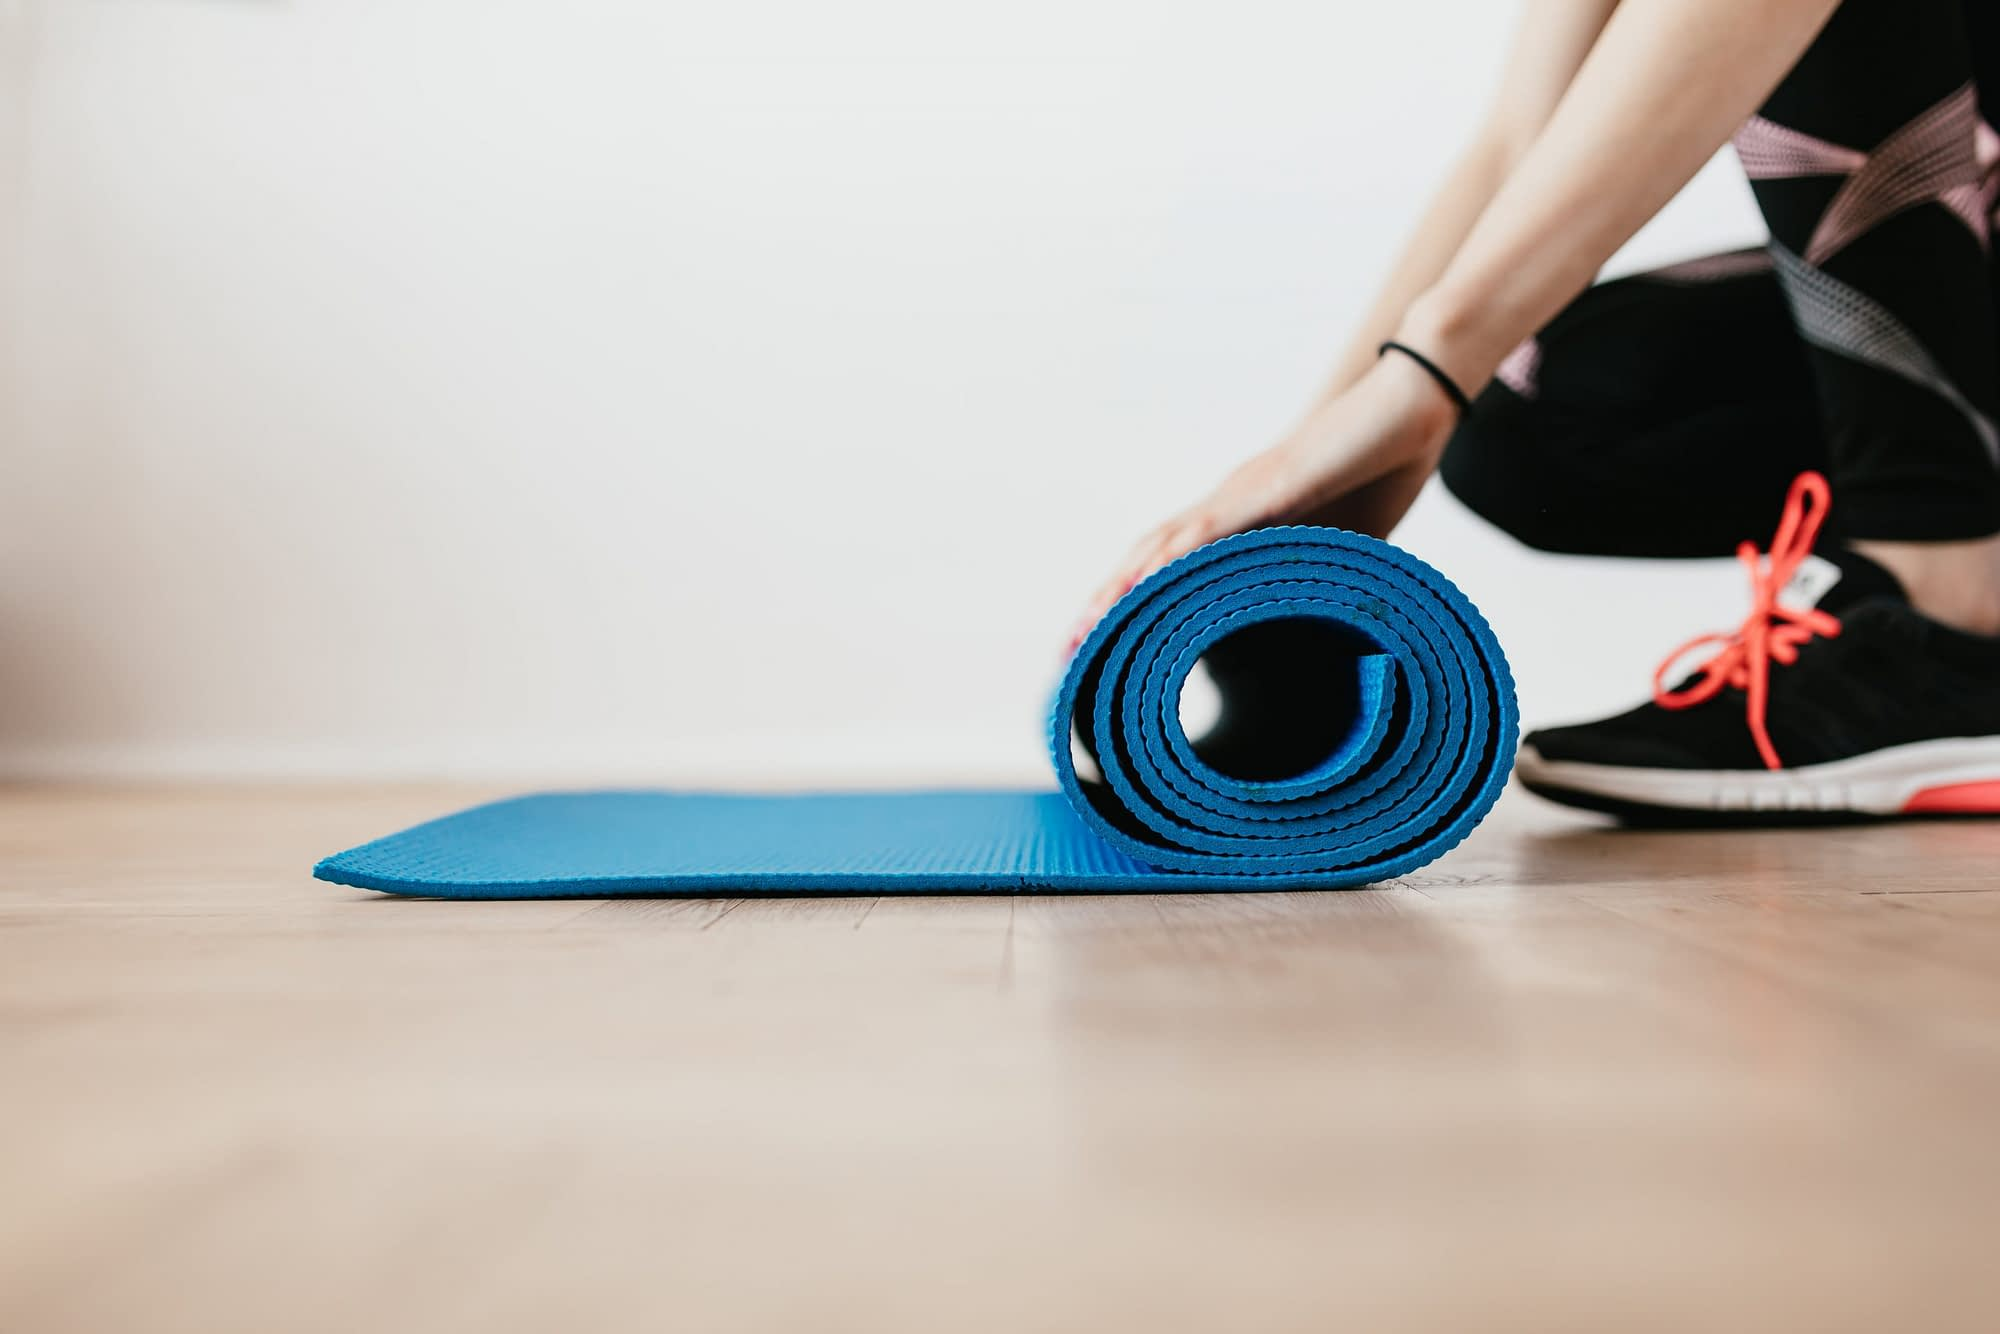 Finding the top yoga mats that fit your build, style, and requirements essentially sets you up for success.